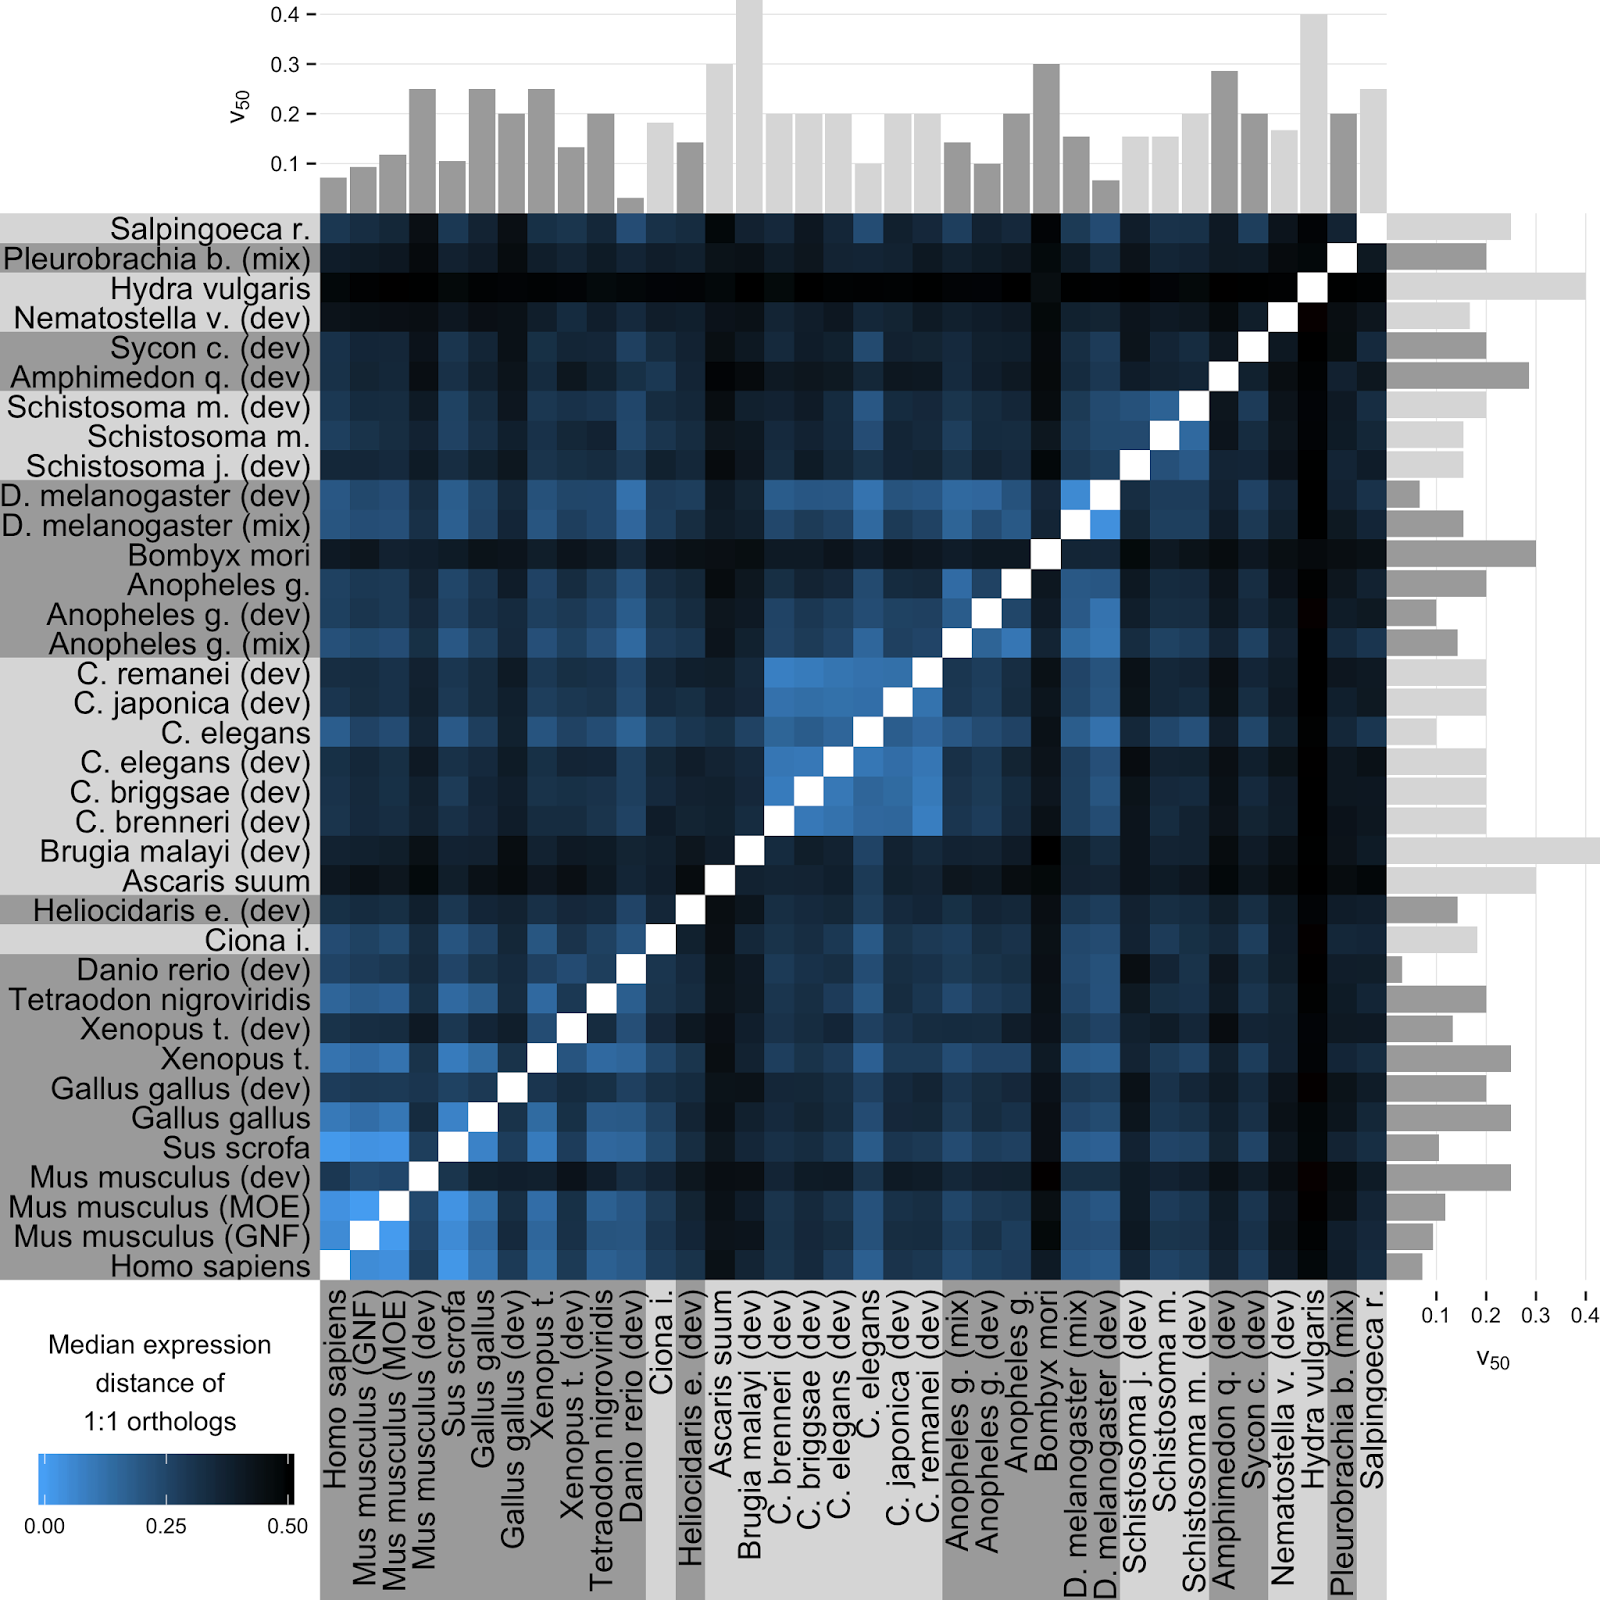 Creating composite figures with ggplot2 for reproducible research